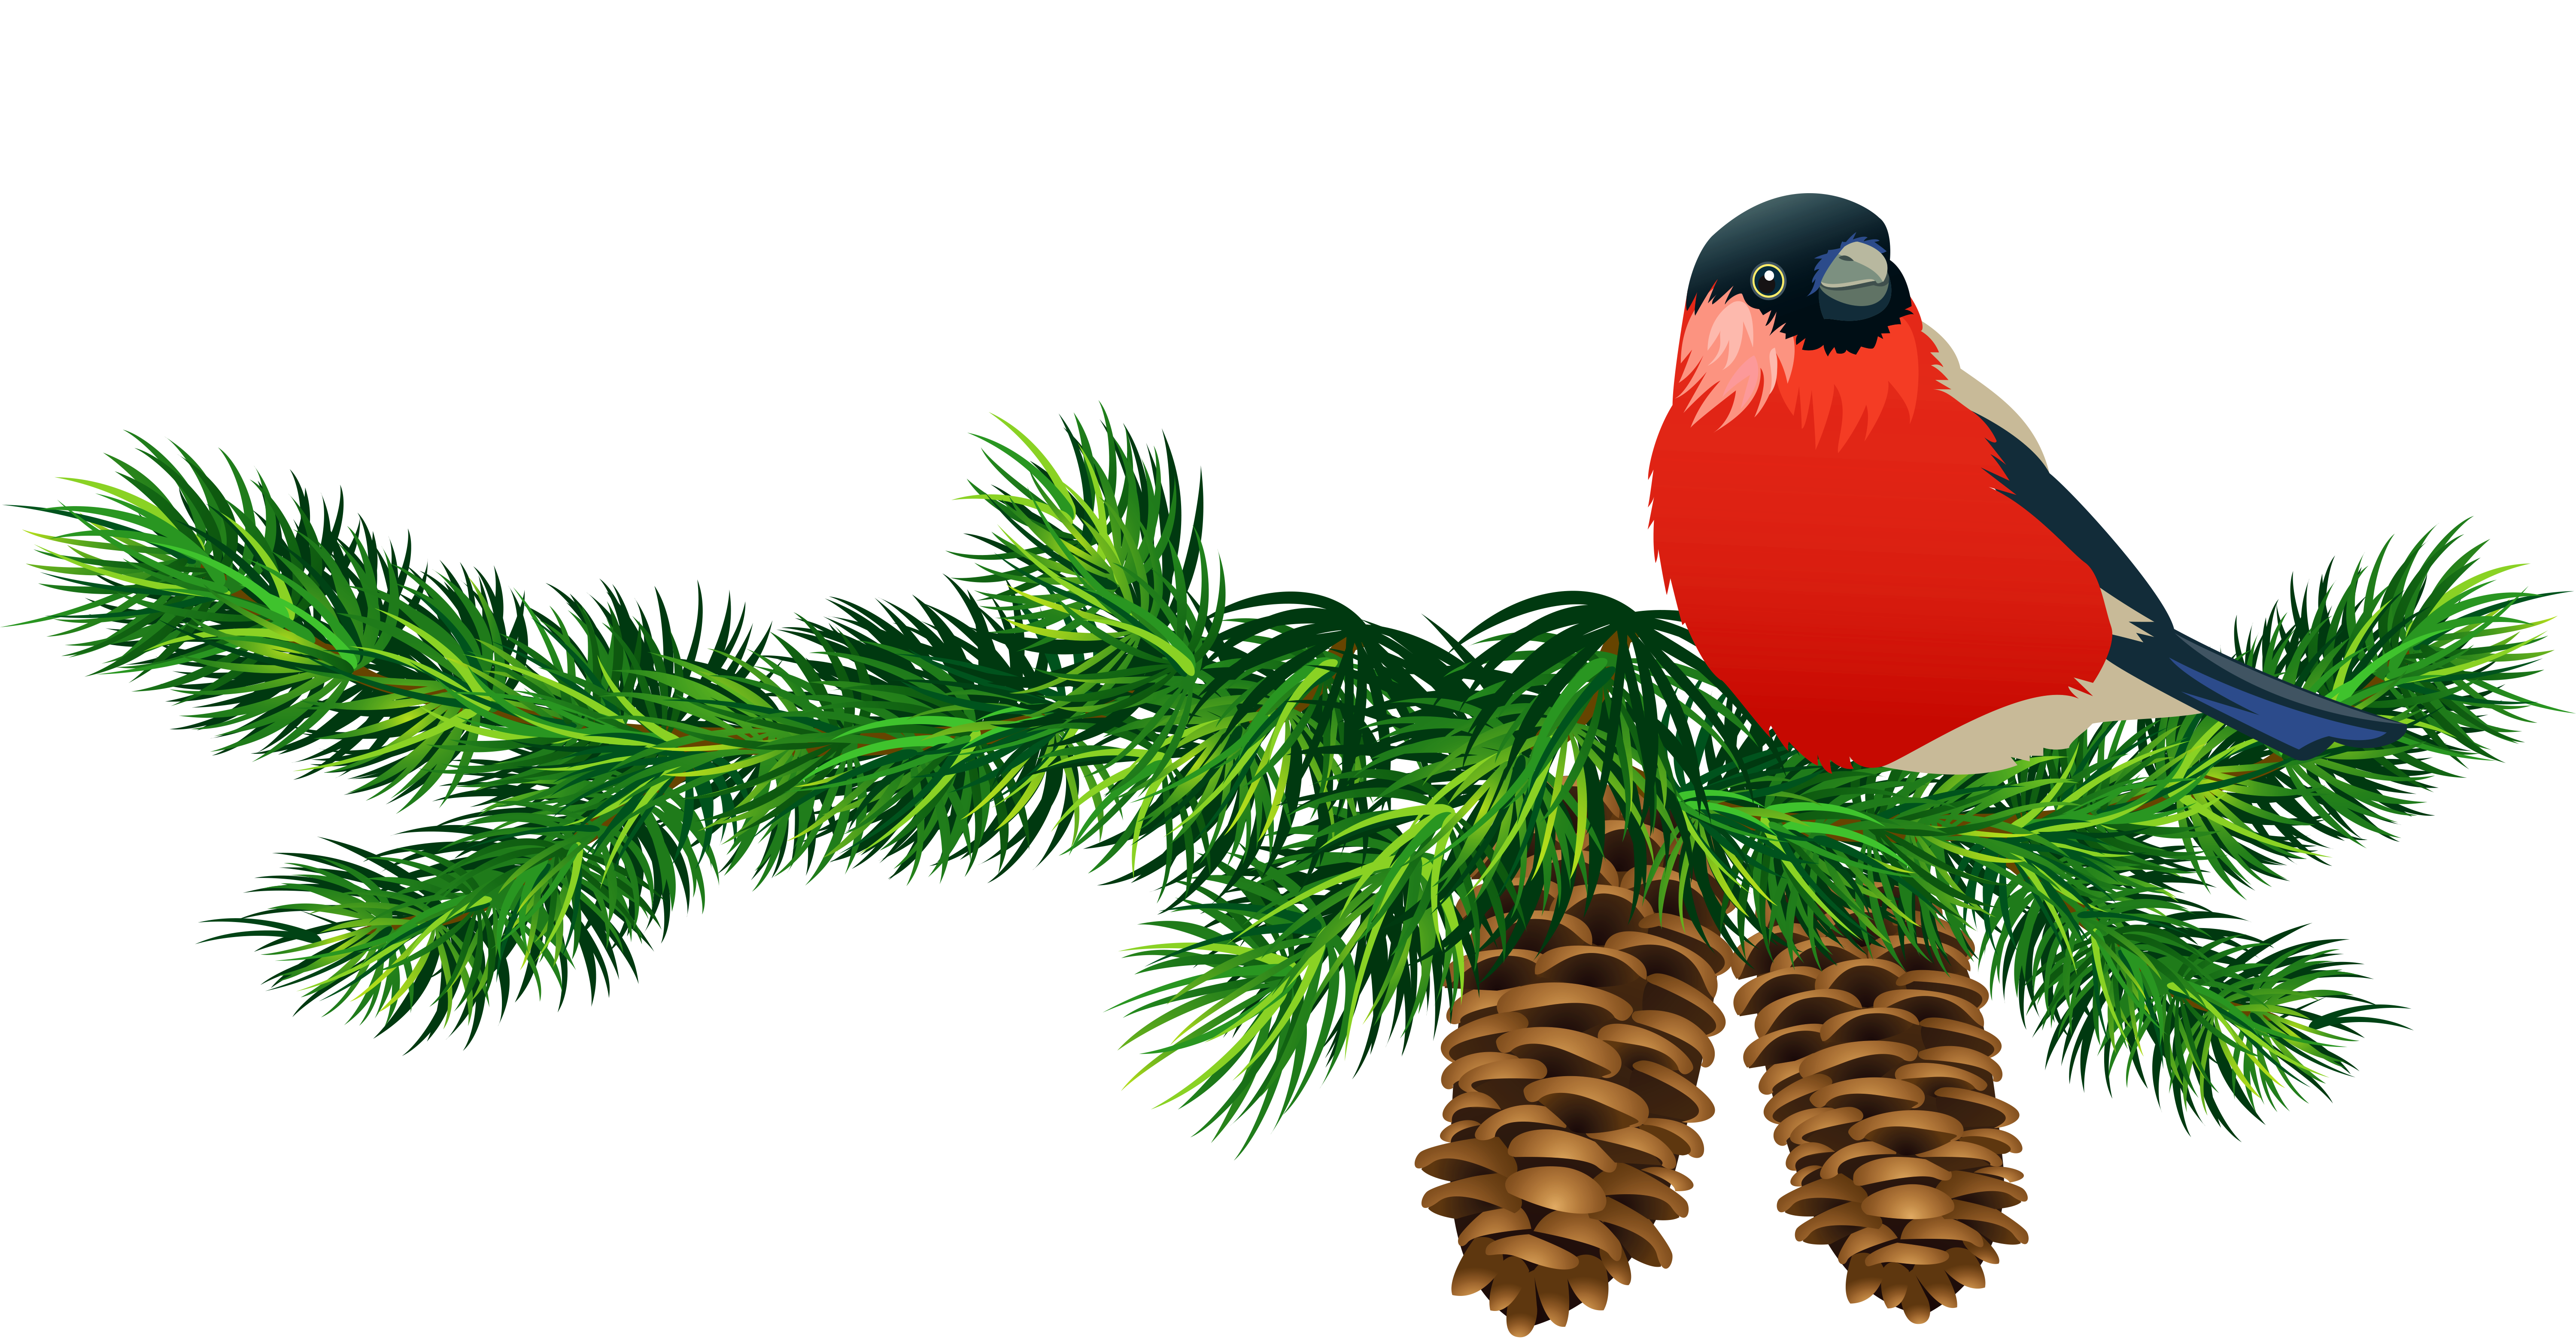 Christmas bird clipart jpg free library Transparent Pine Branch with Cones and Bird | Gallery Yopriceville ... jpg free library